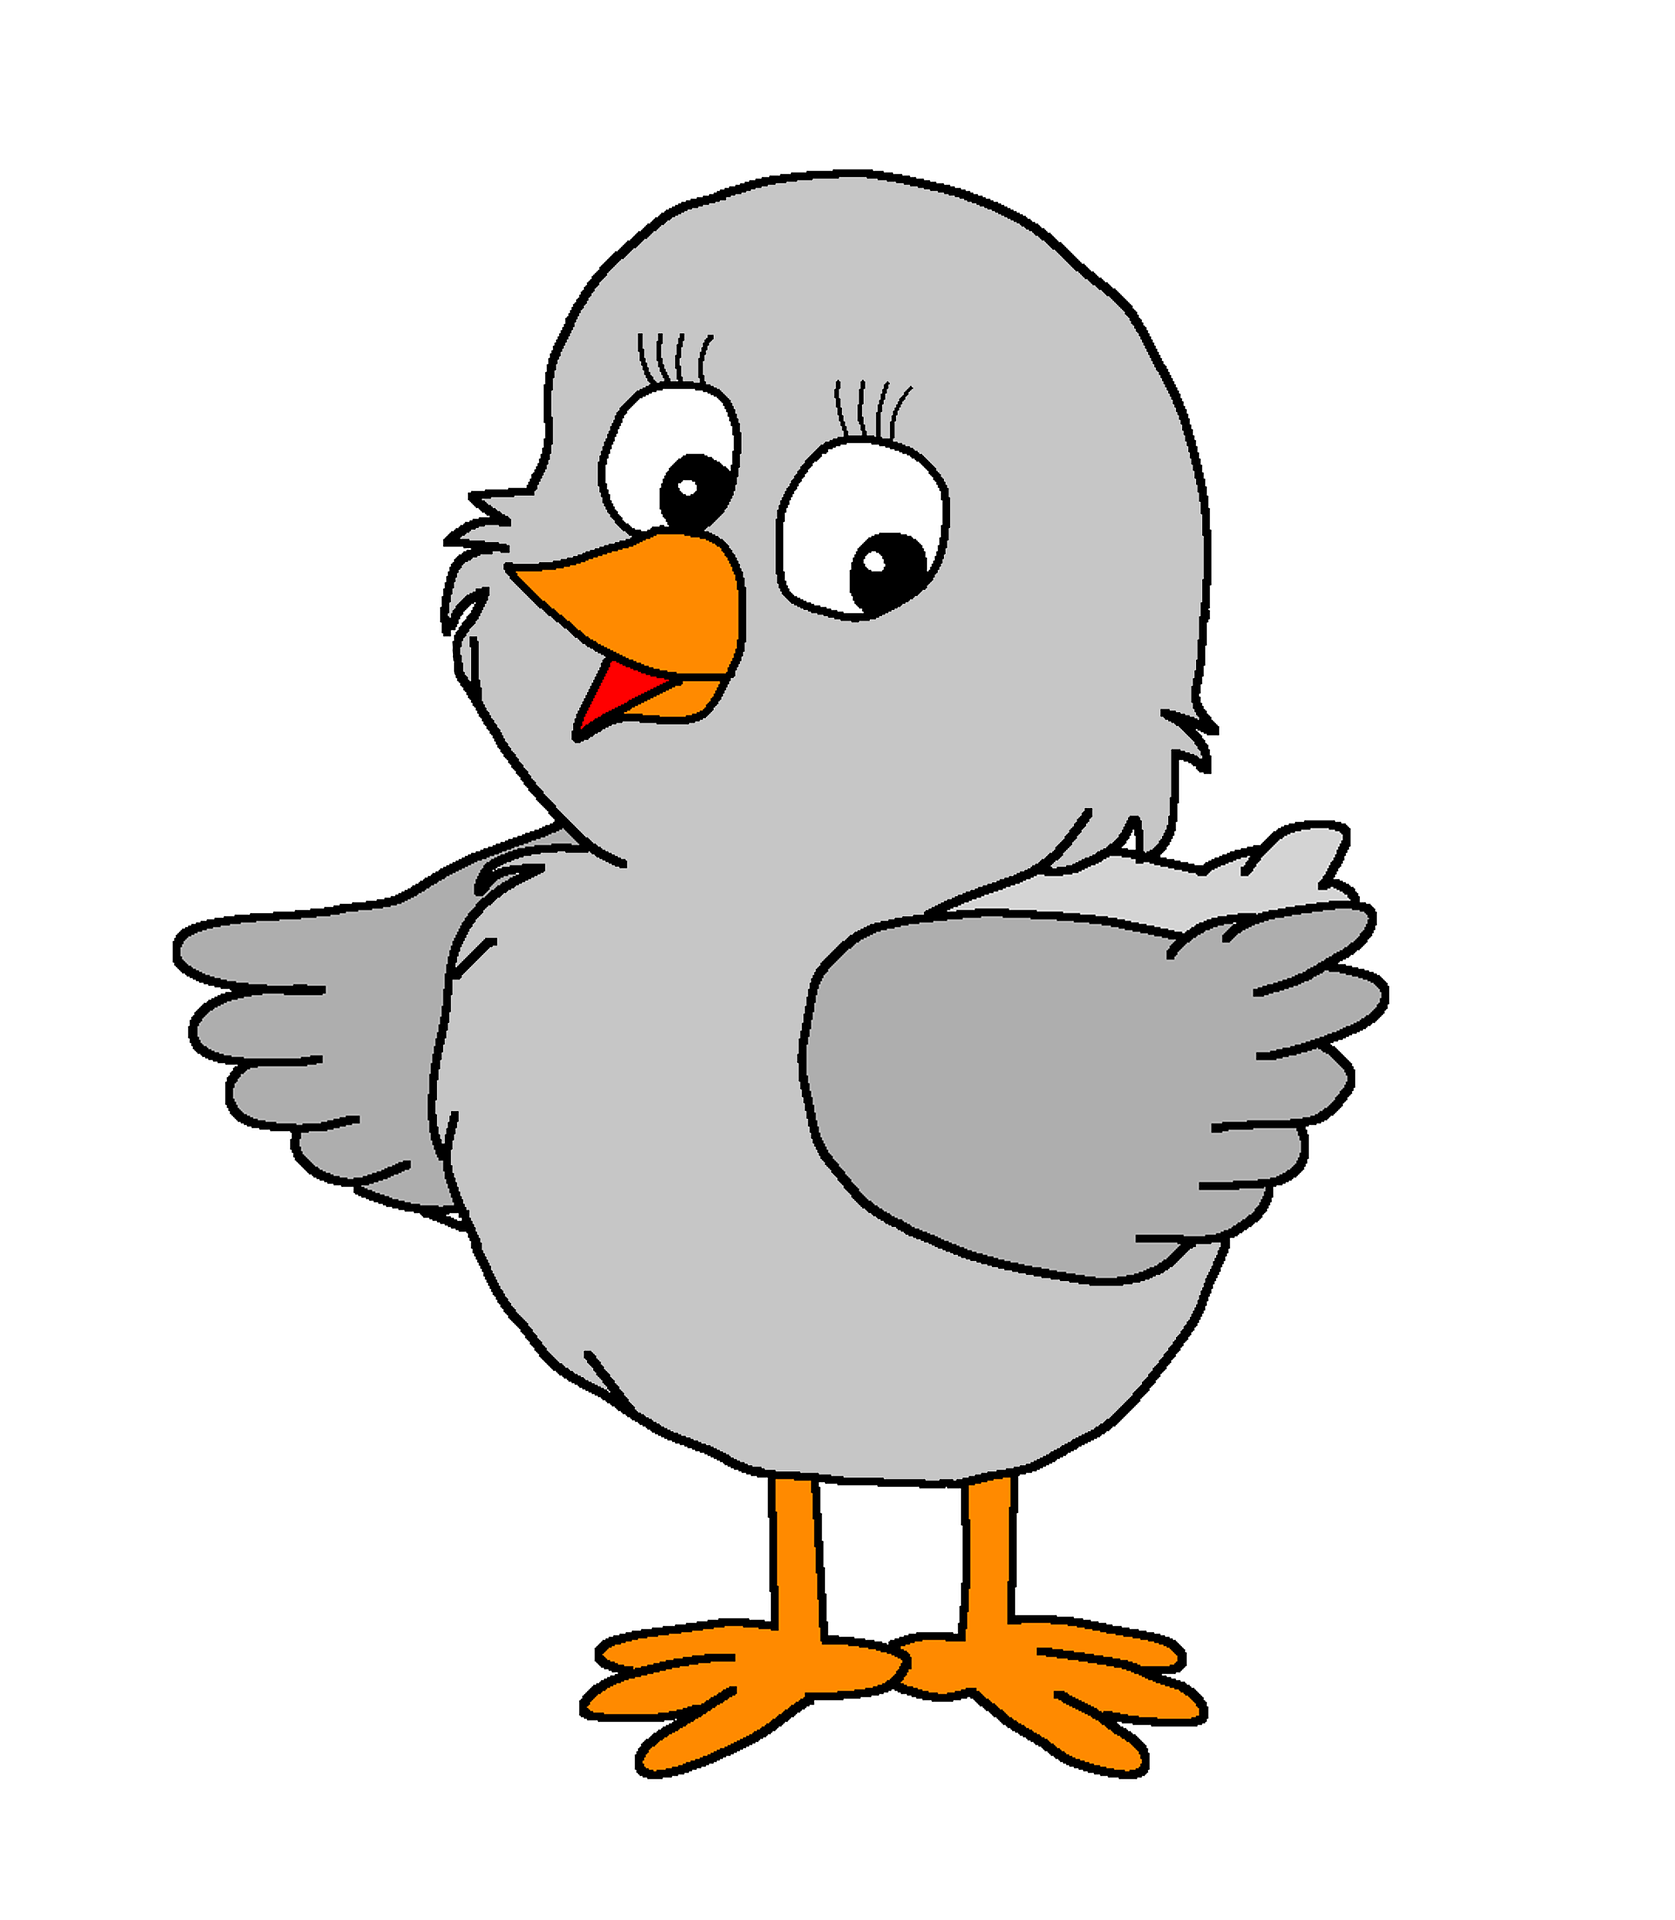 Ugly duckling clipart transparent The Ugly Duckling of the Frequency Spectrum - Audio Issues ... transparent